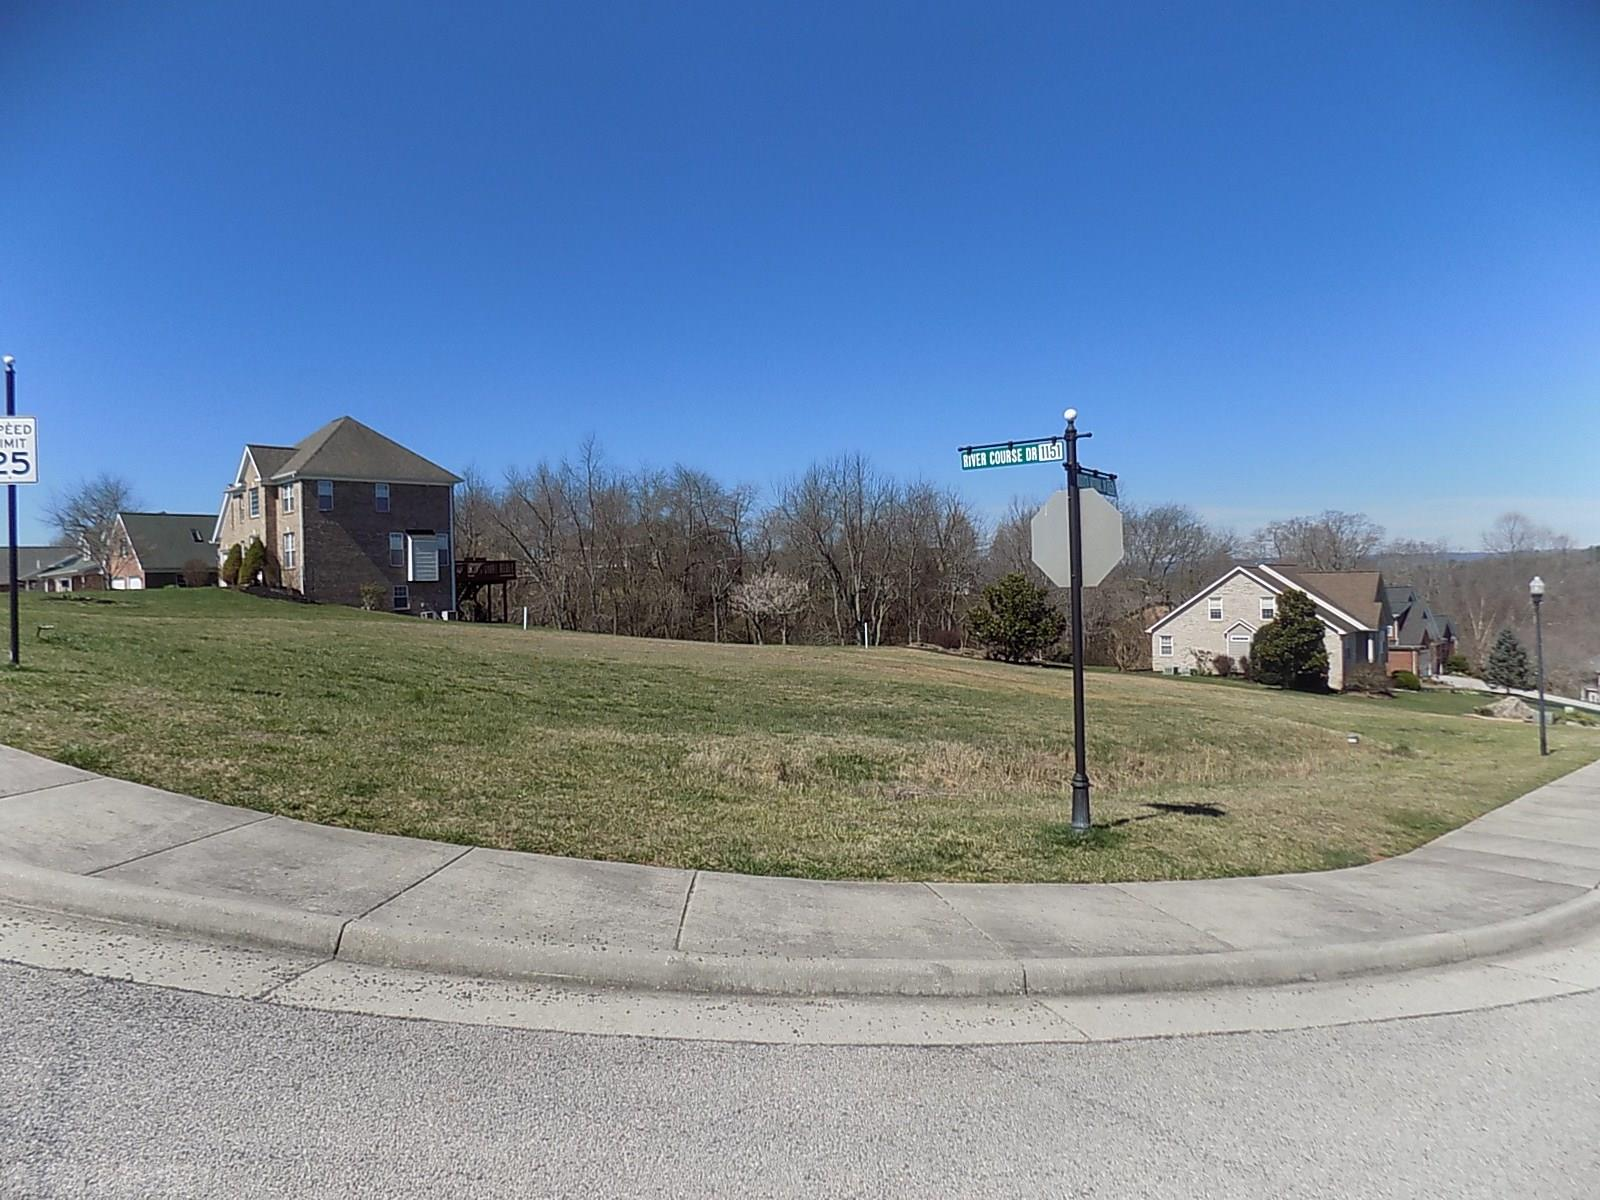 Nice Corner lot  with majestic river view available in Heron's landing at the river phase 1! Property sits at the Pete Dye VA Tech golf course, within walking distance to club house and practice range. Conveniently located between Virginia tech central campus and Radford university. Grocery stores, restaurants, and shopping centers are nearby, just minutes away by car. Land is cleared and ready for those looing  to build your dream home. Public water and sewer available.